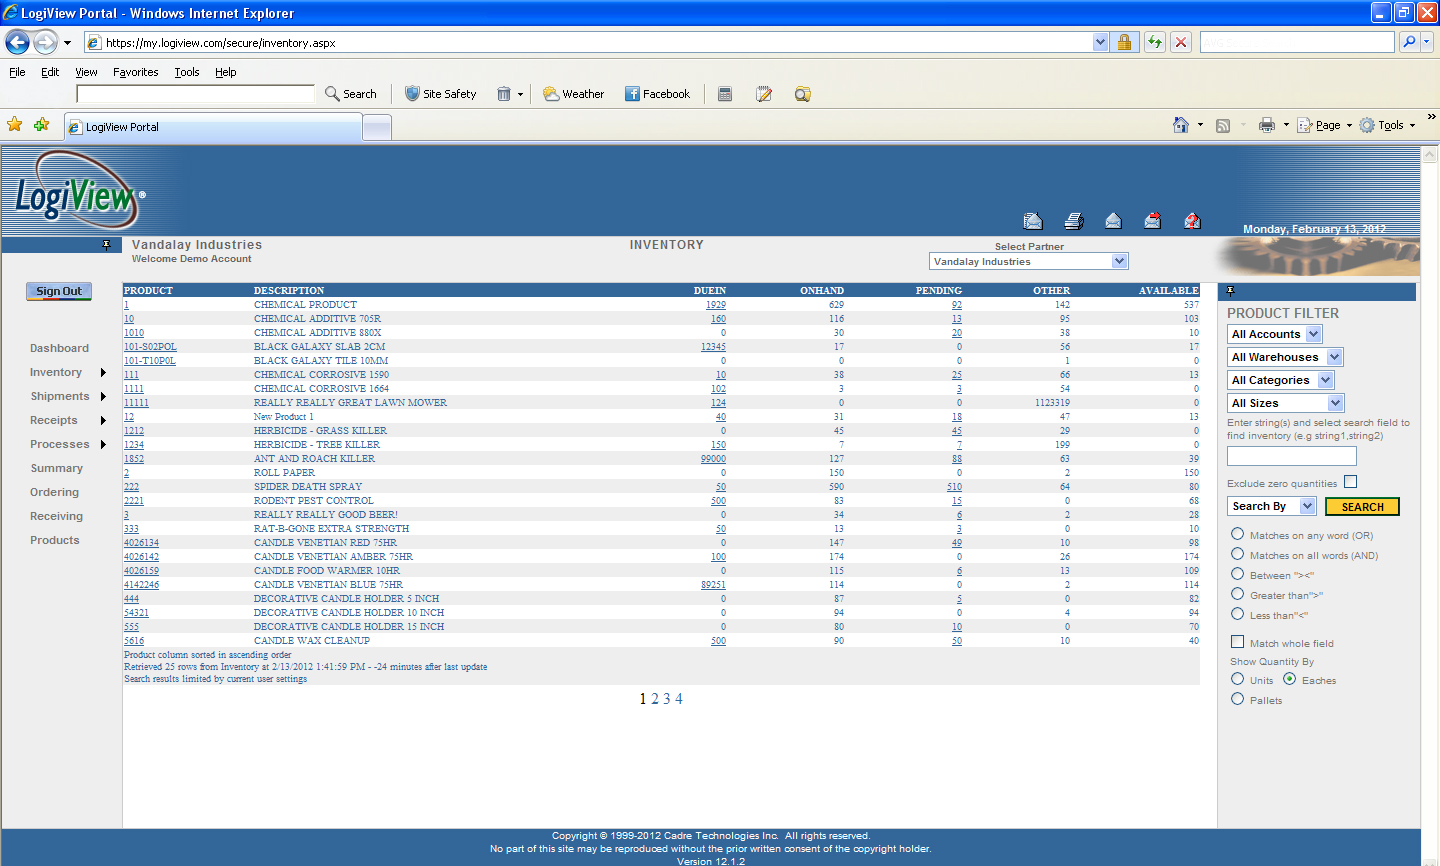 LogiView inventory screen